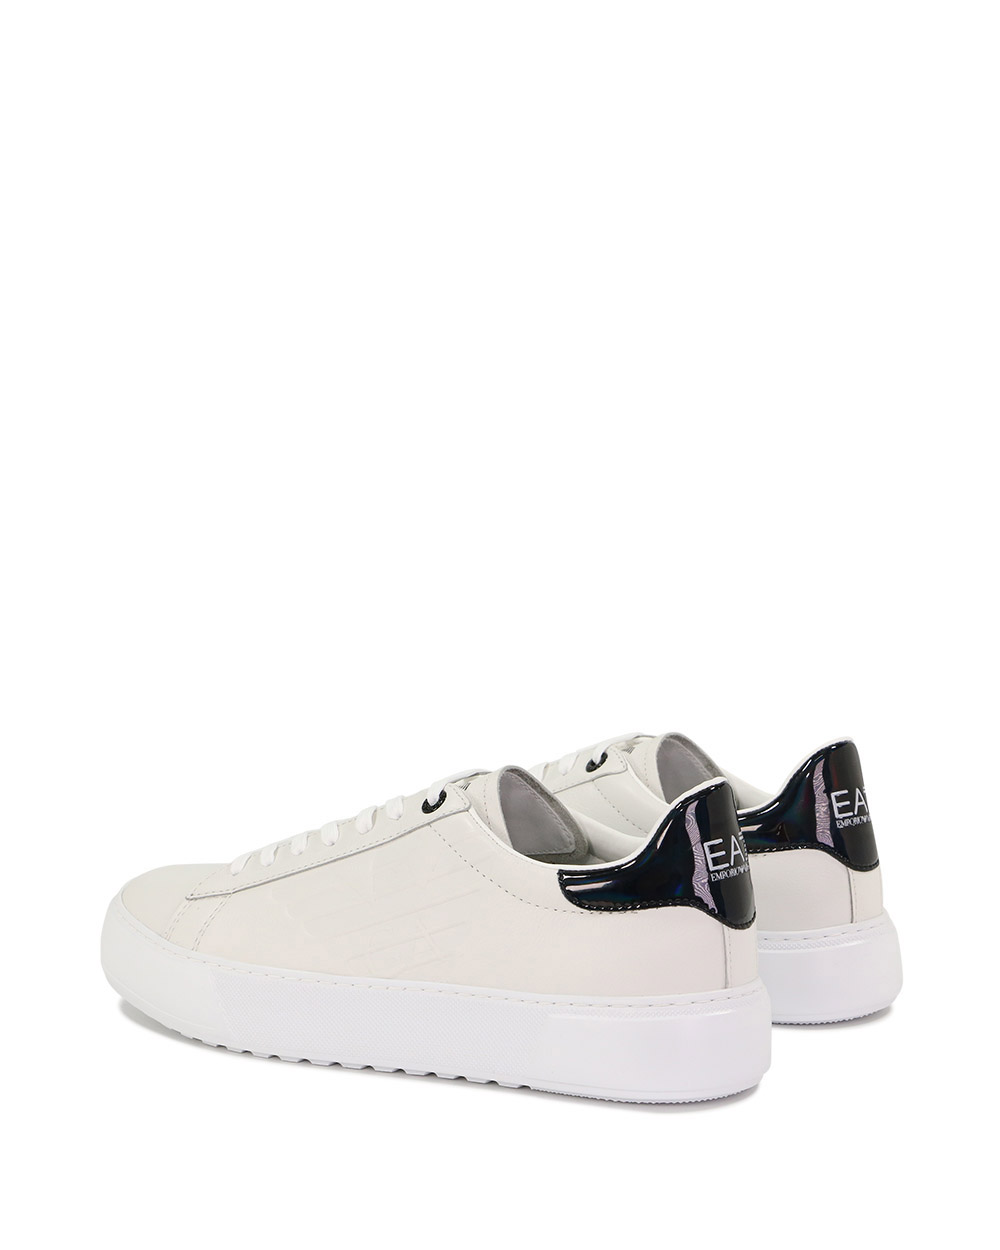 EA7 Inclining Stripes Sneakers 6